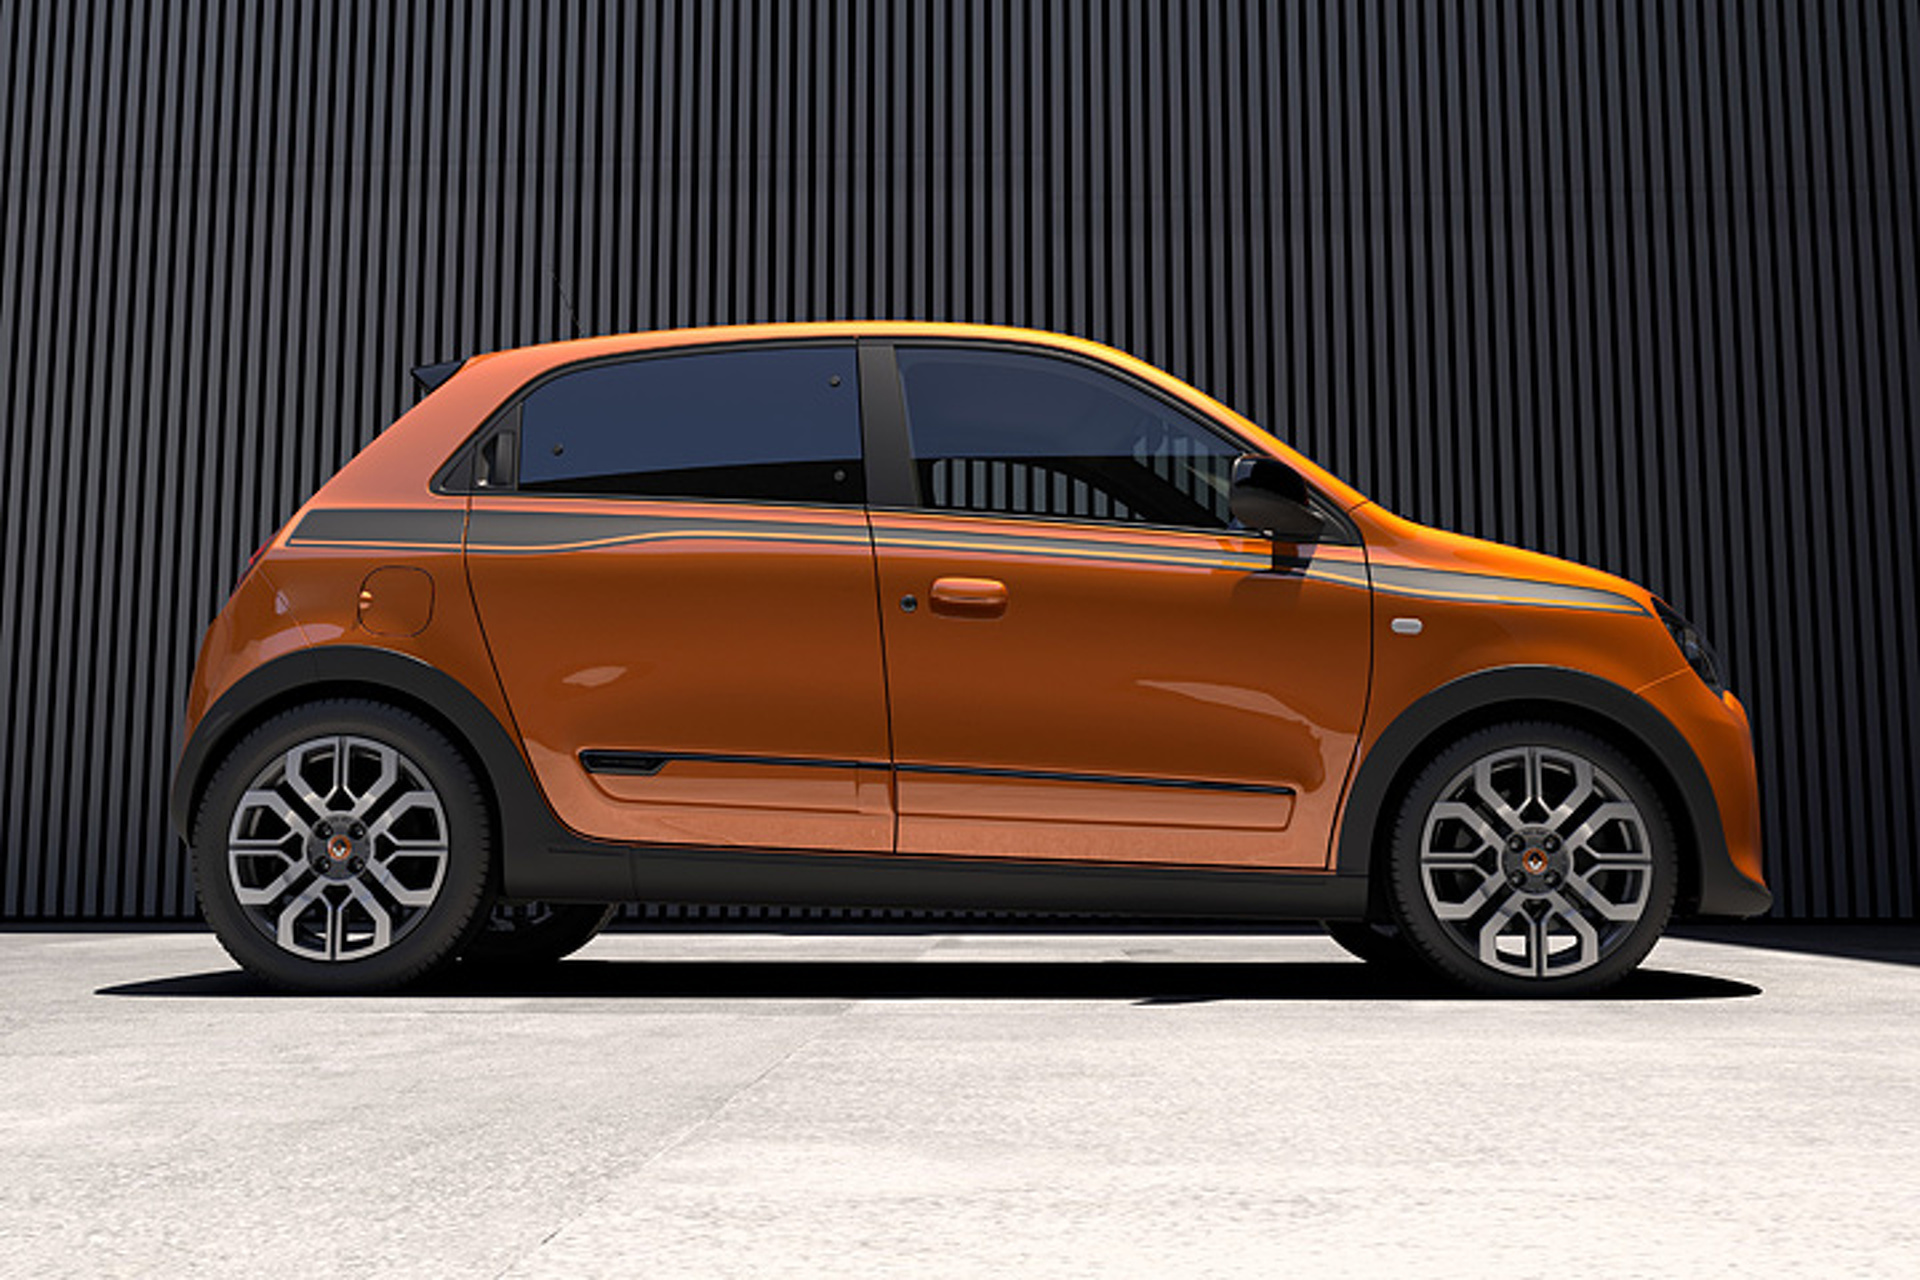 New Renault Hatchback Sadly Won't Come to the USA